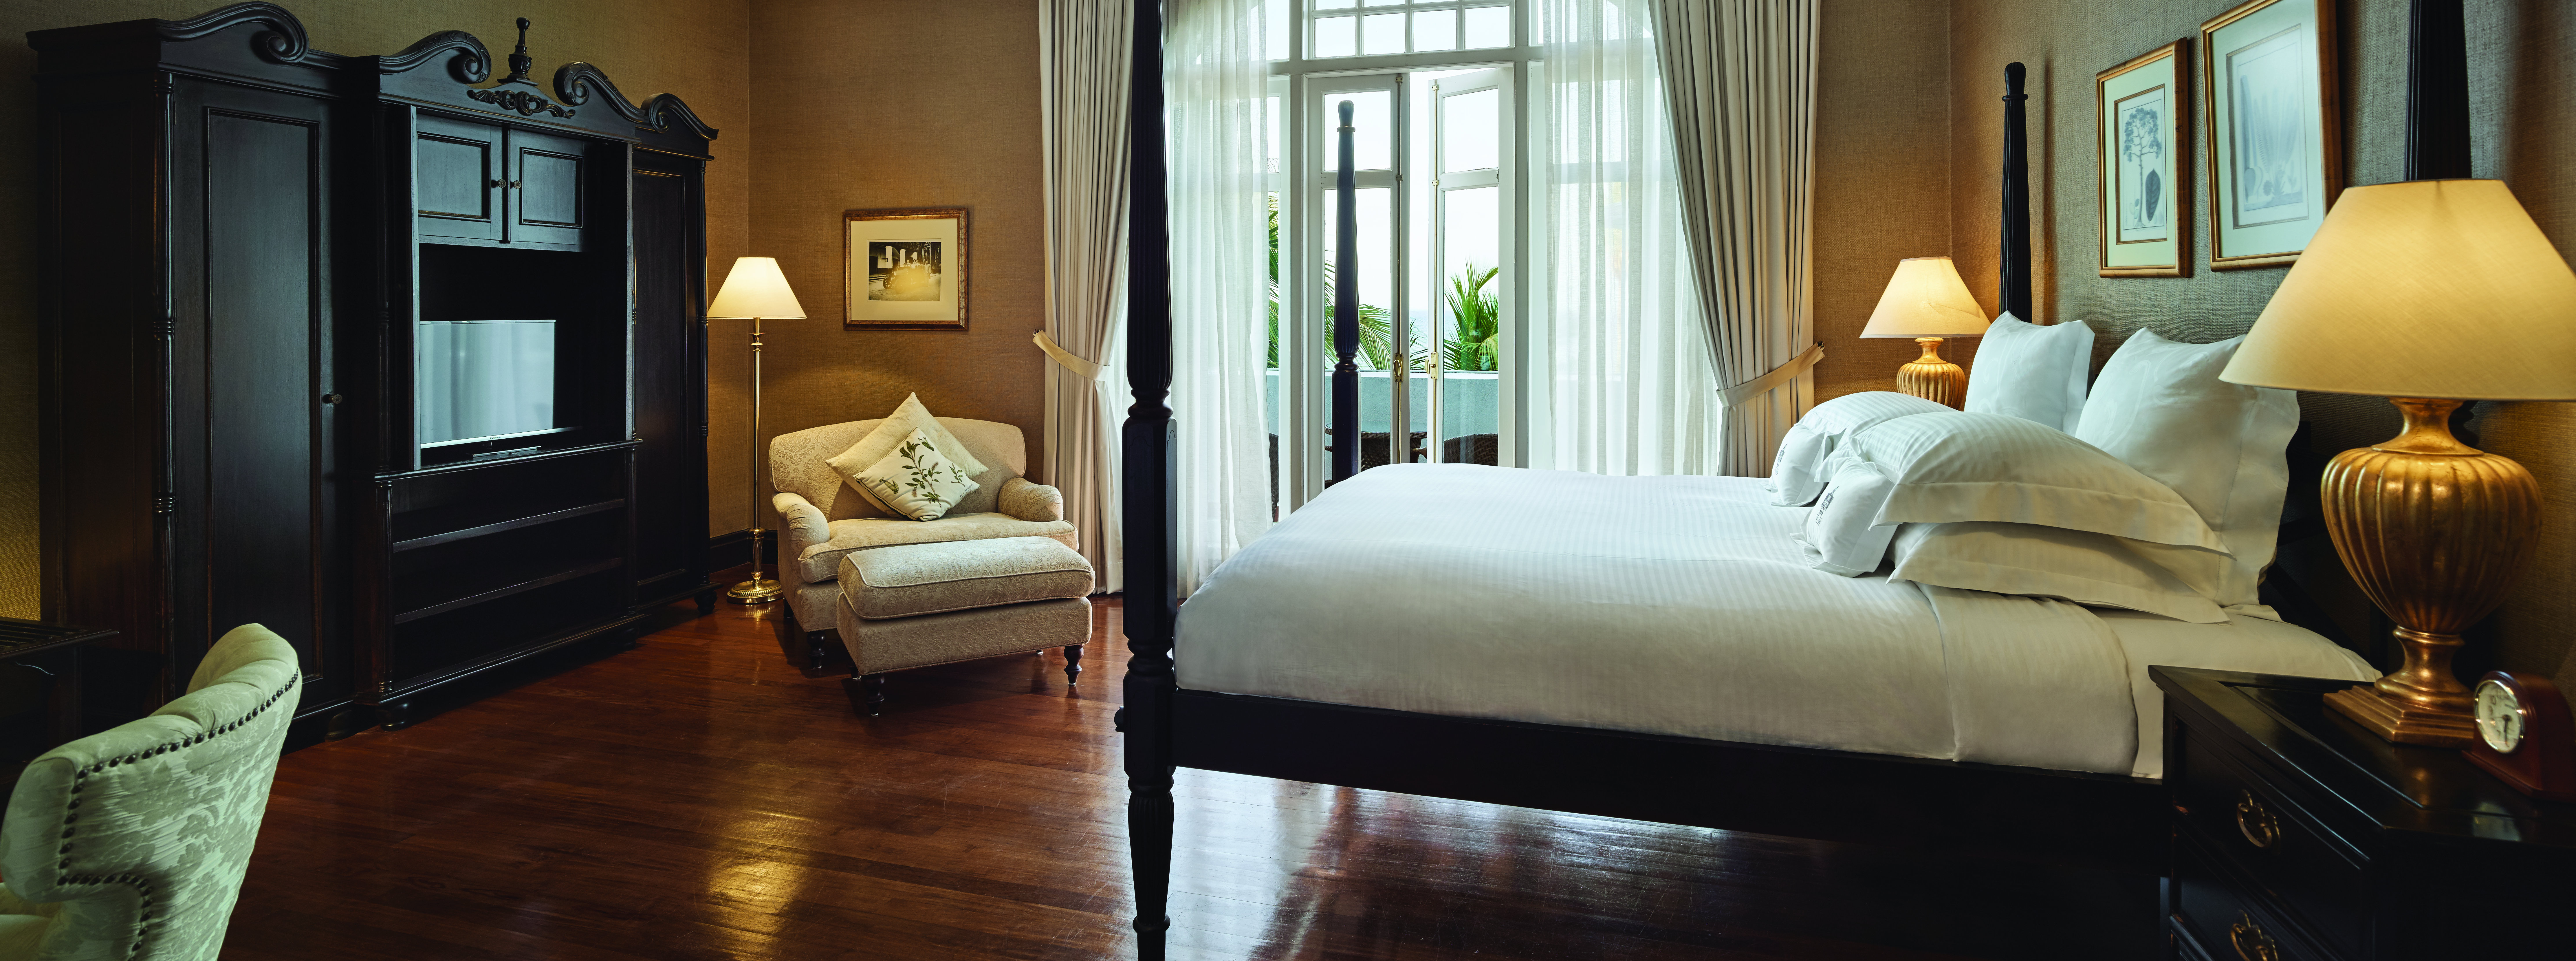 luxury-hotel-bedroom-penang